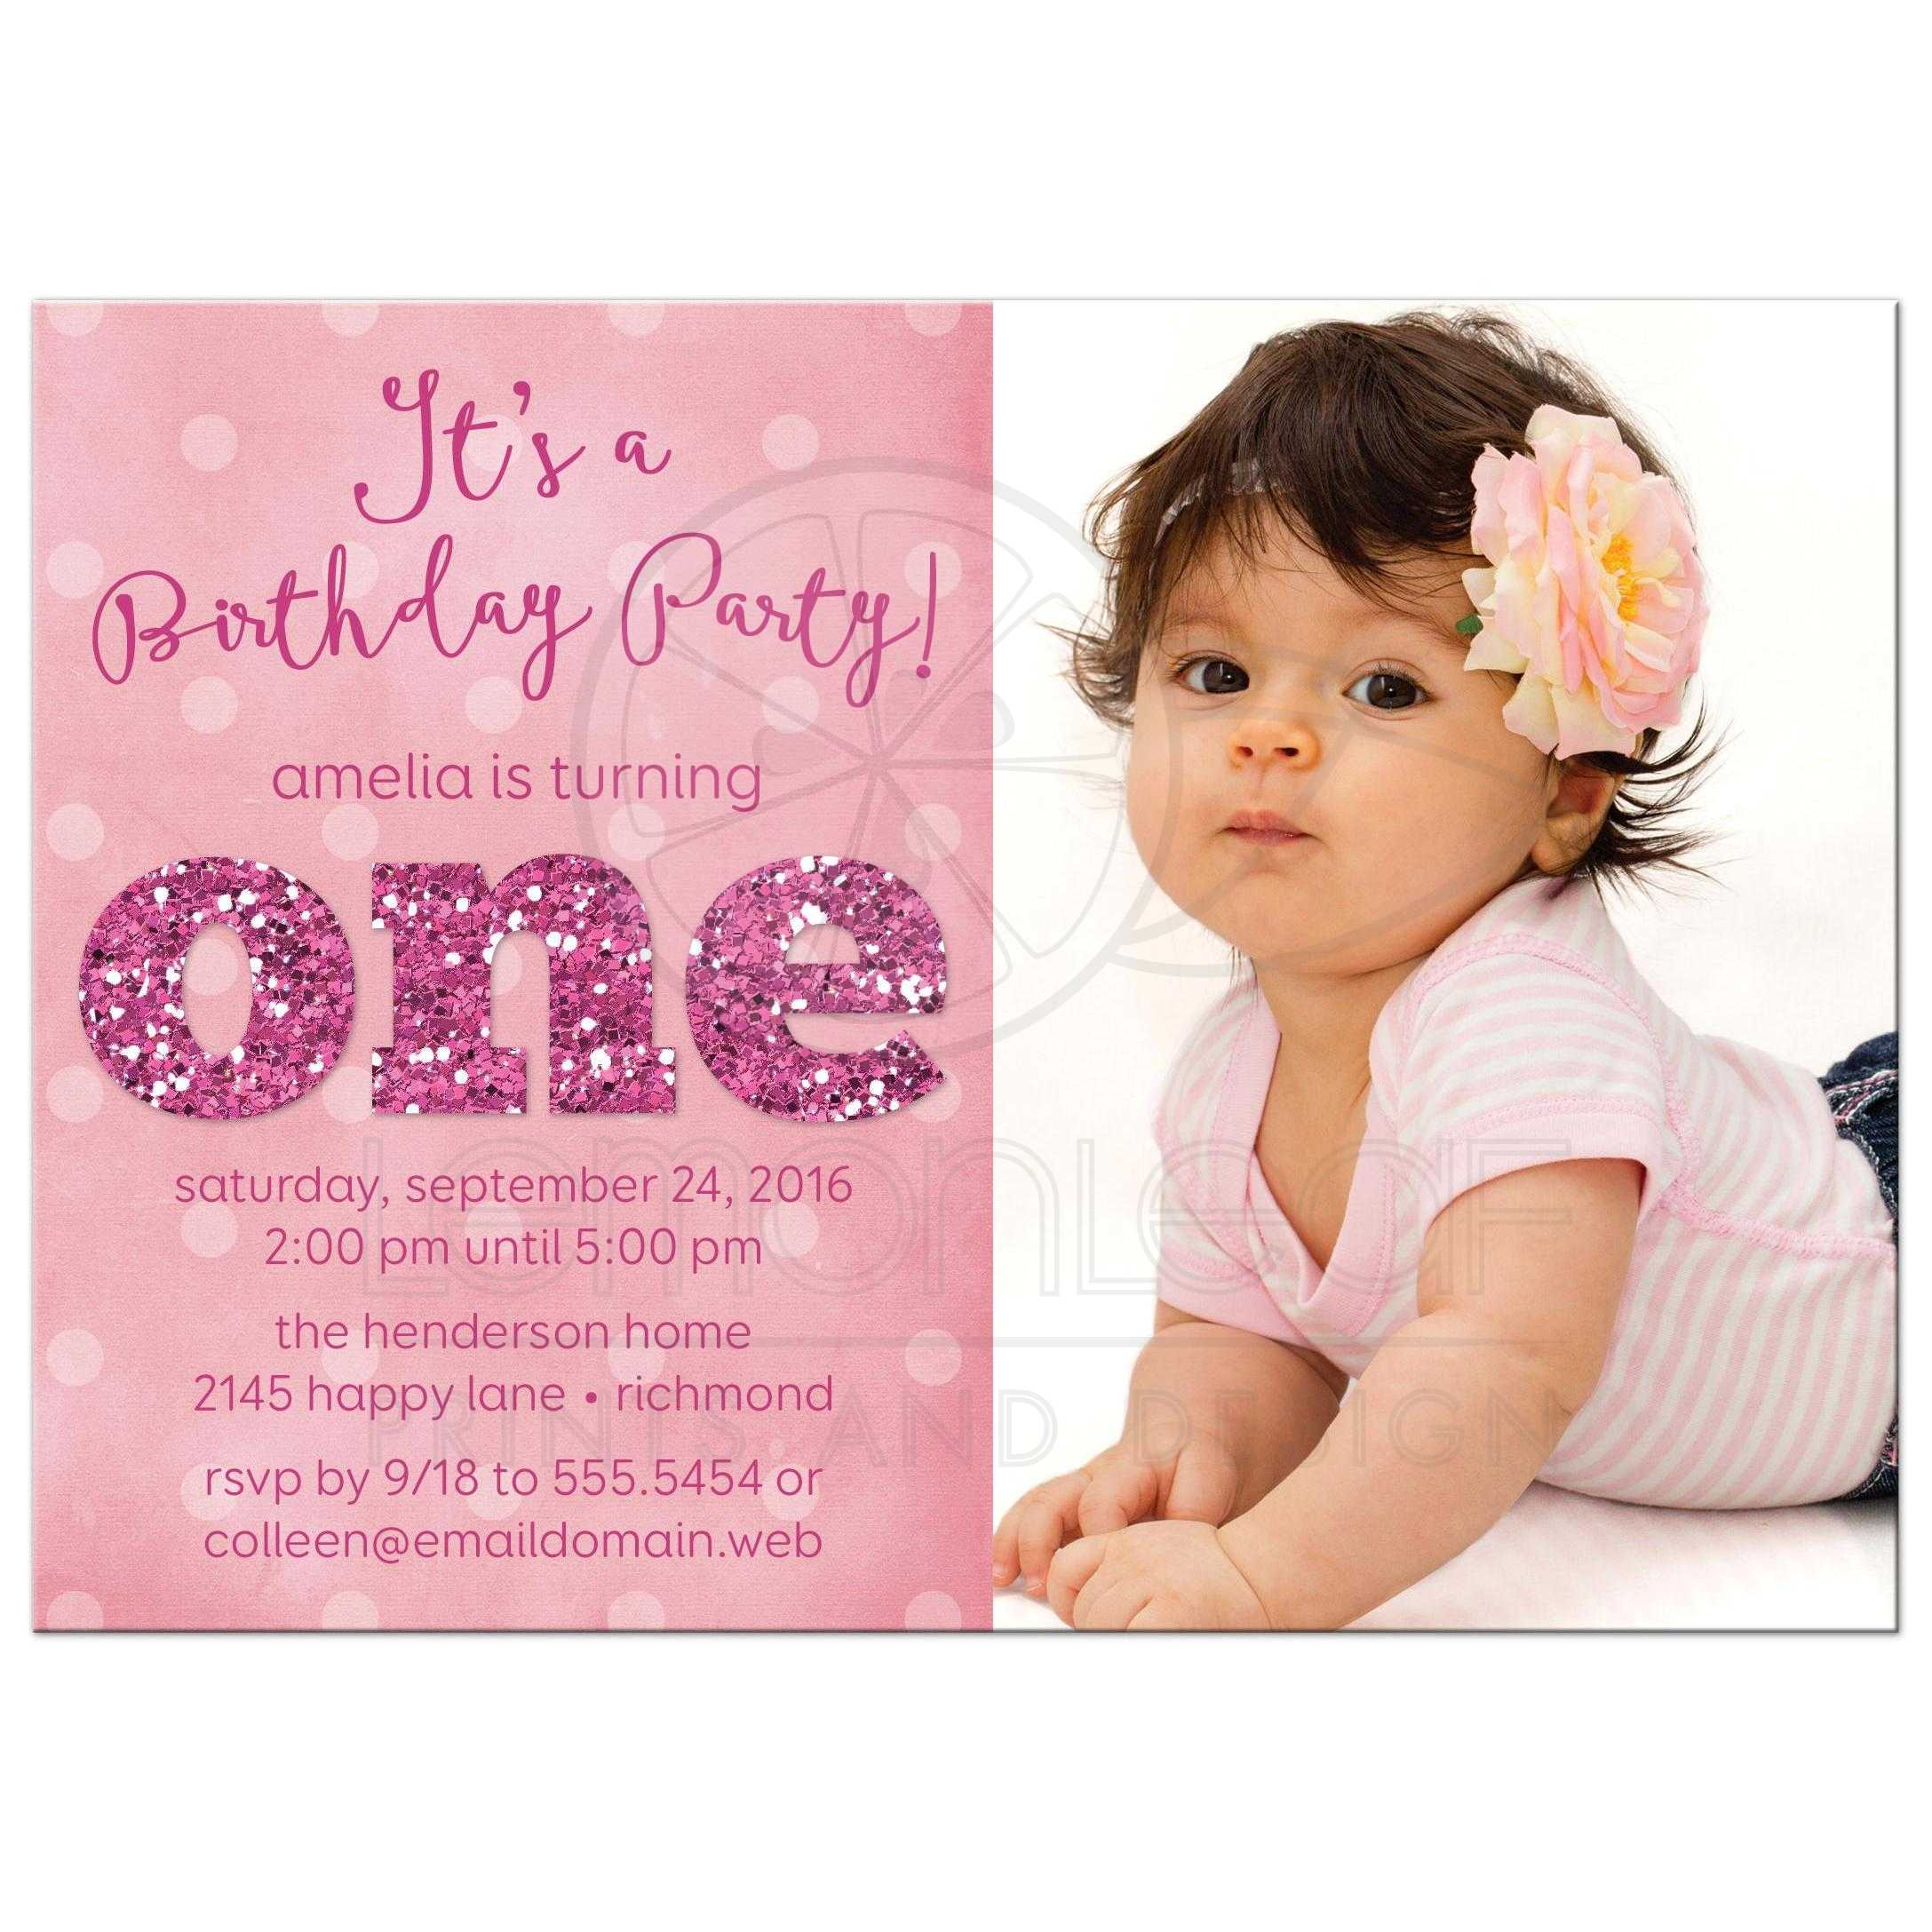 First birthday party invitation yolarnetonic first birthday party invitation filmwisefo